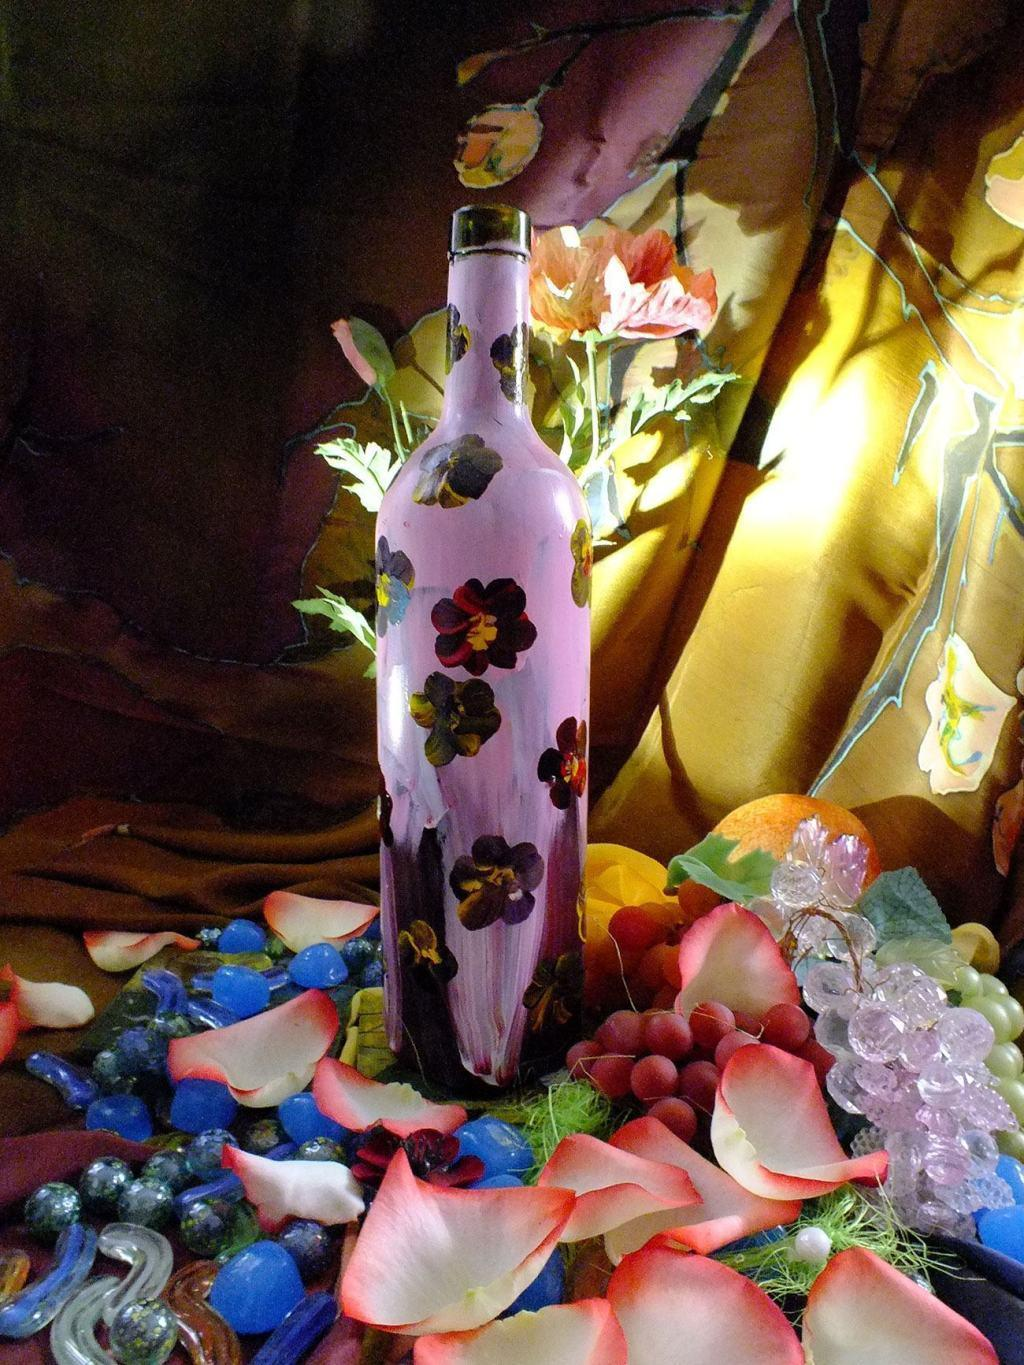 Craft with Glass Bottle: 80 Amazing Tips and Photos 21